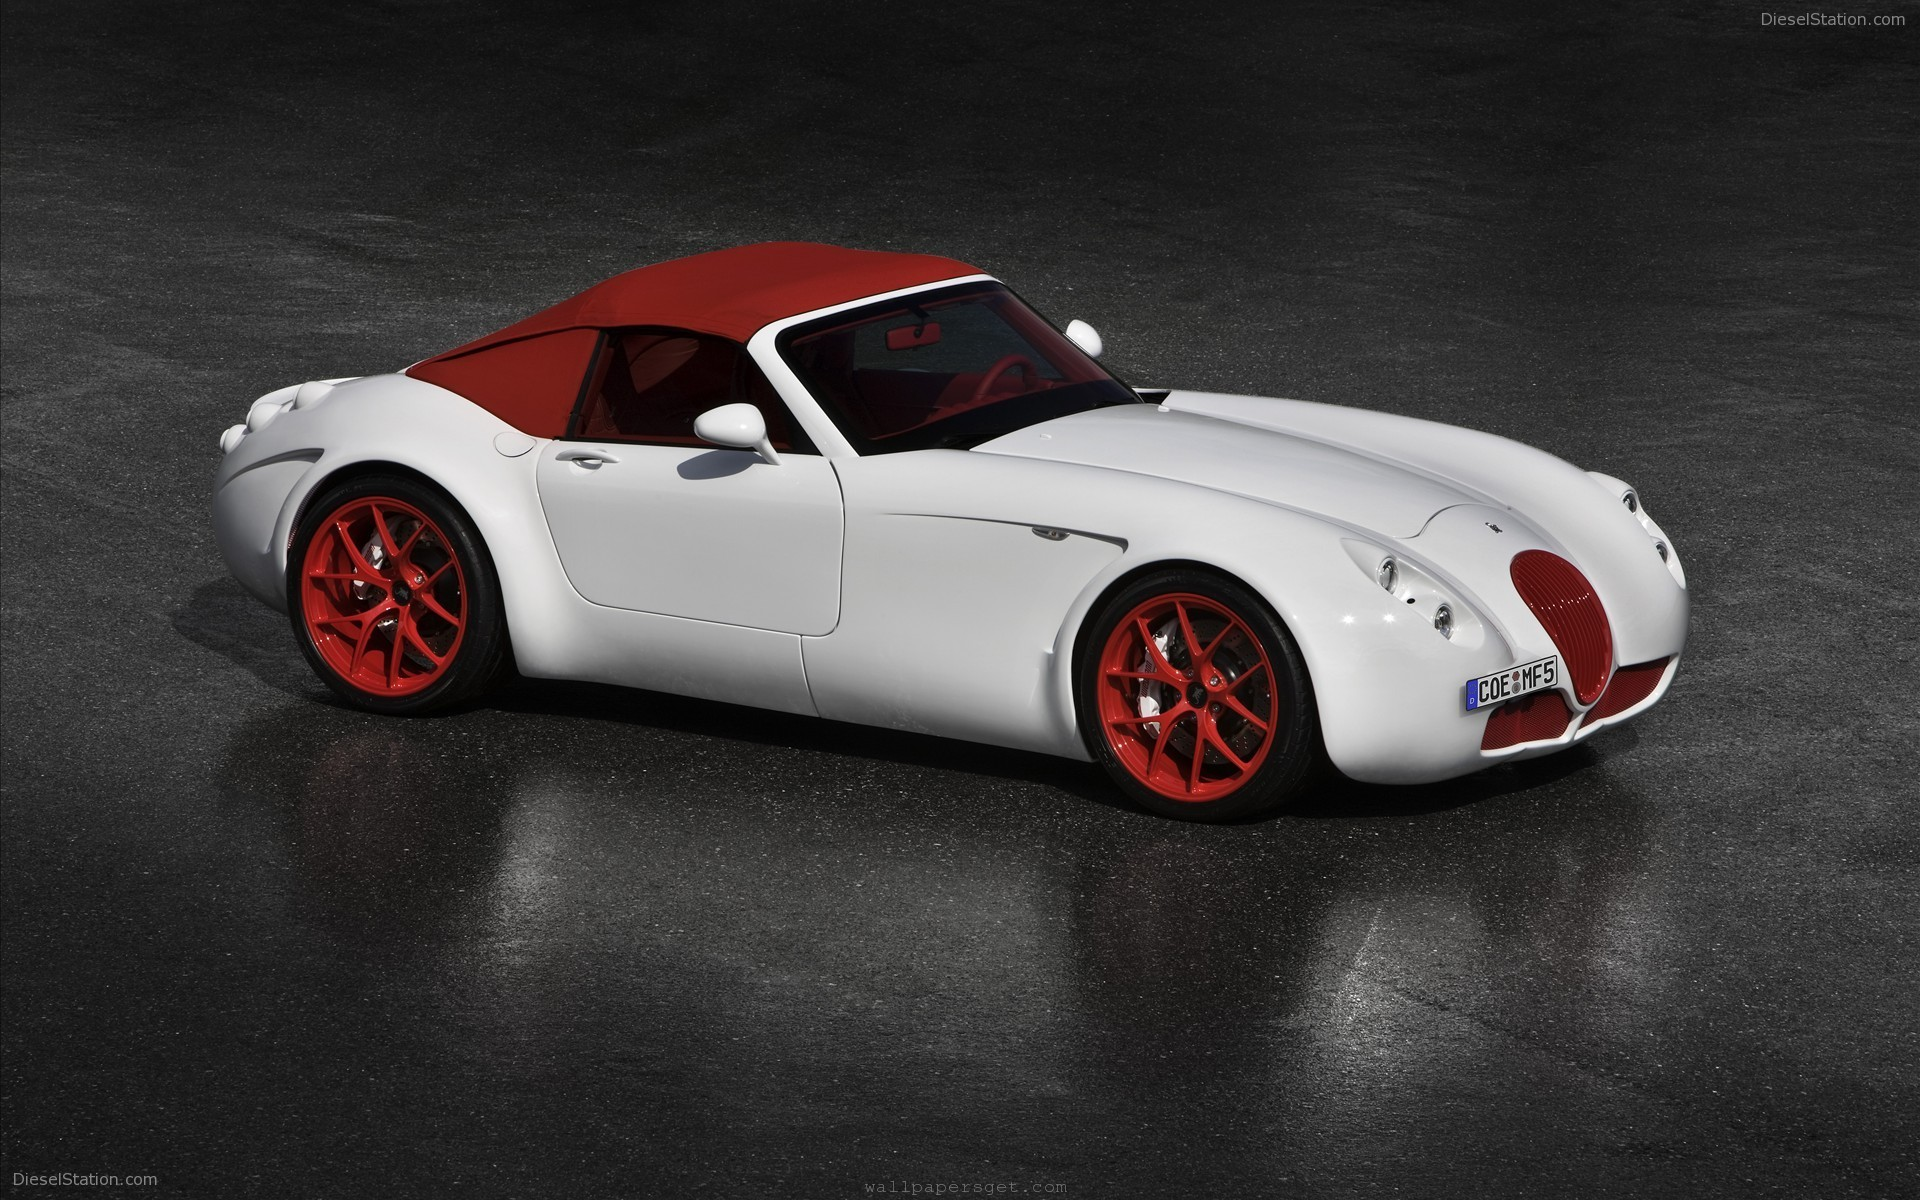 Wiesmann Car Images: Wiesmann Wallpapers Full Hd Wallpaper Search,Car